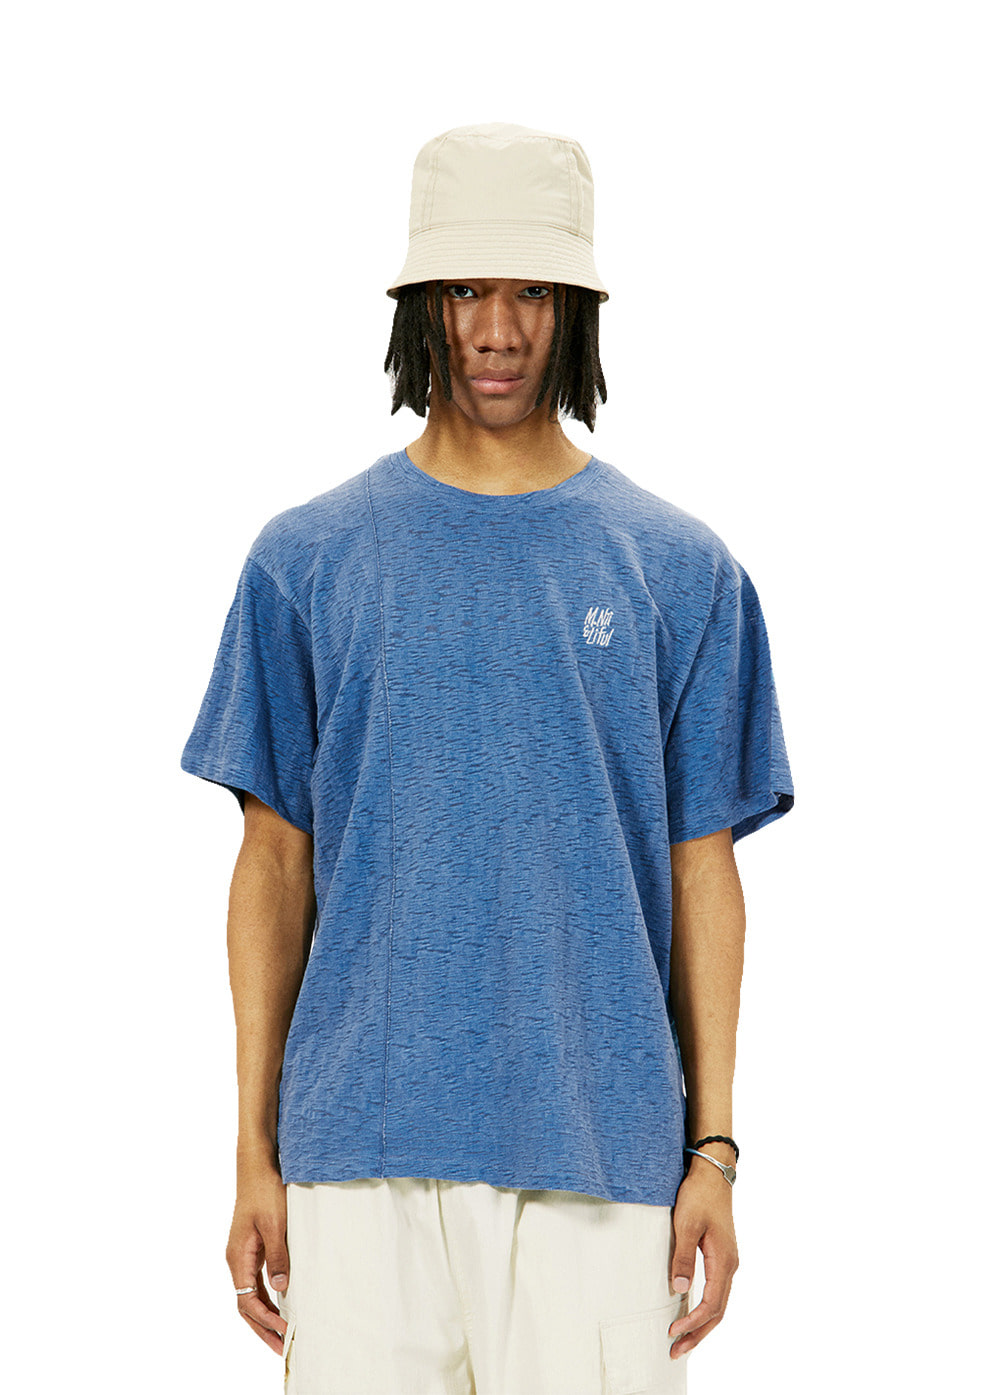 LIFUL X M.NII SEAM OUT TEE blue